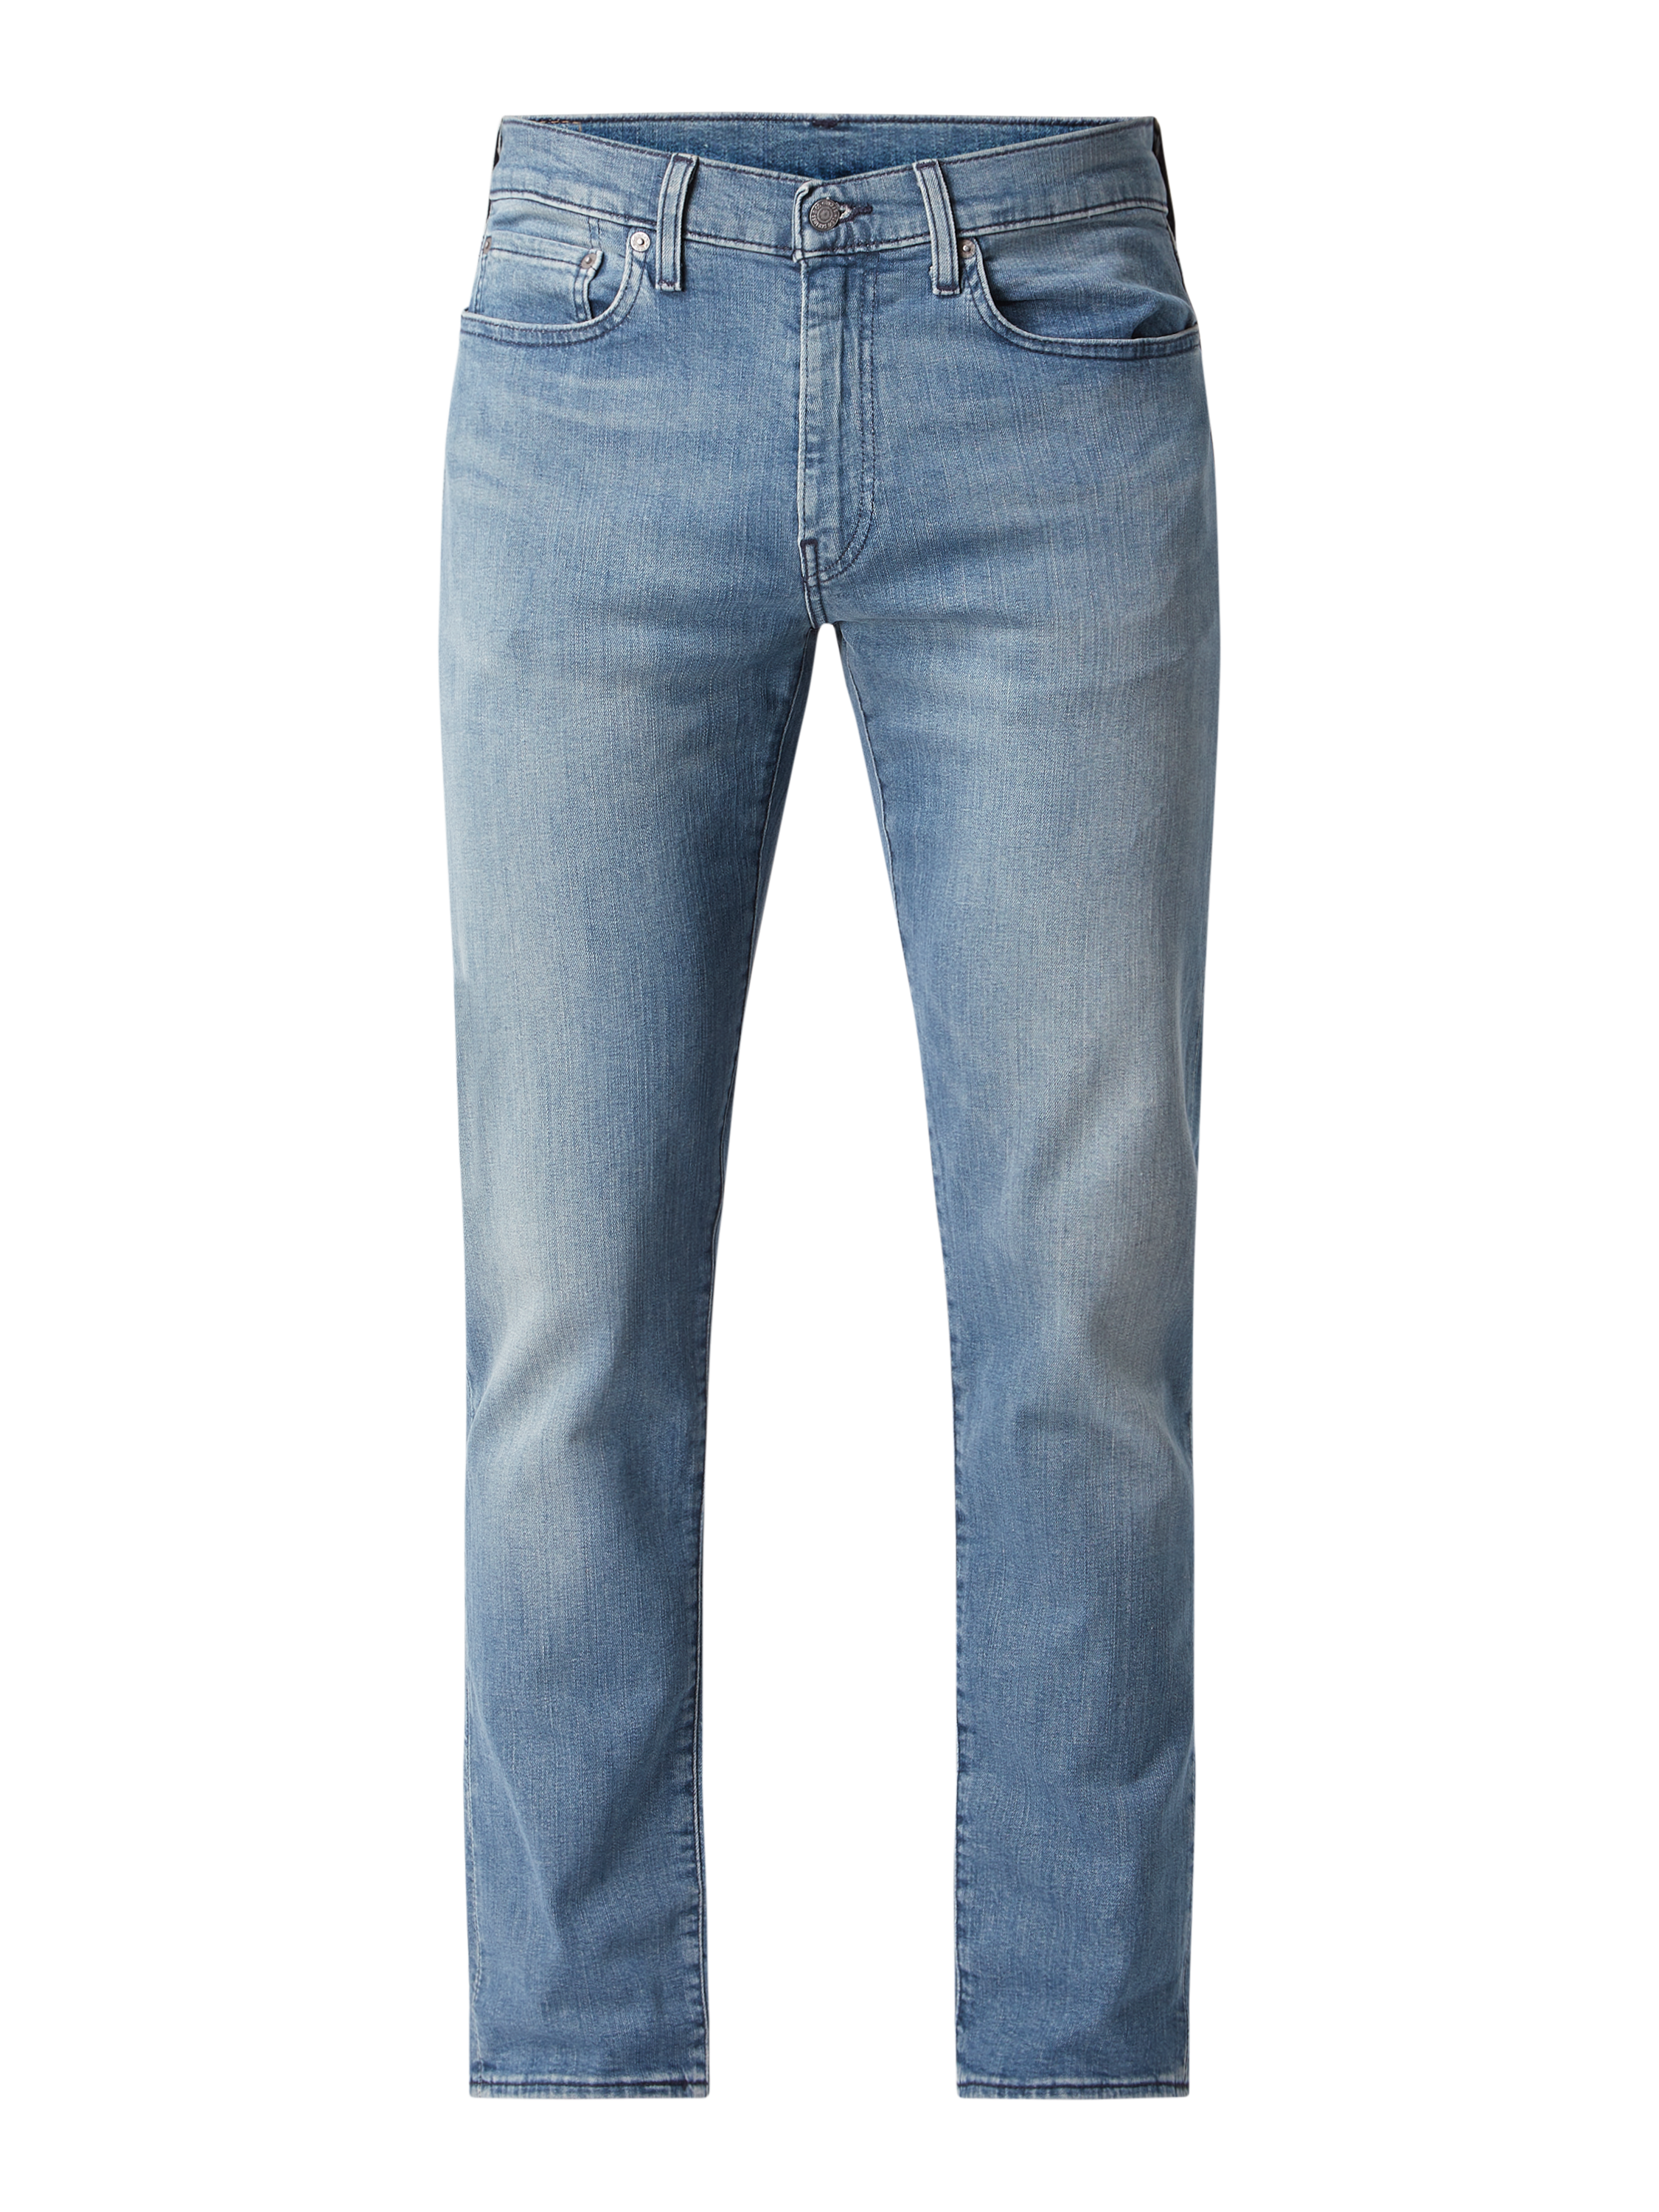 Jeans Stretch Modell – Levi's® Mit Anteil Fit '502' Tapered 8wPXNOnZ0k